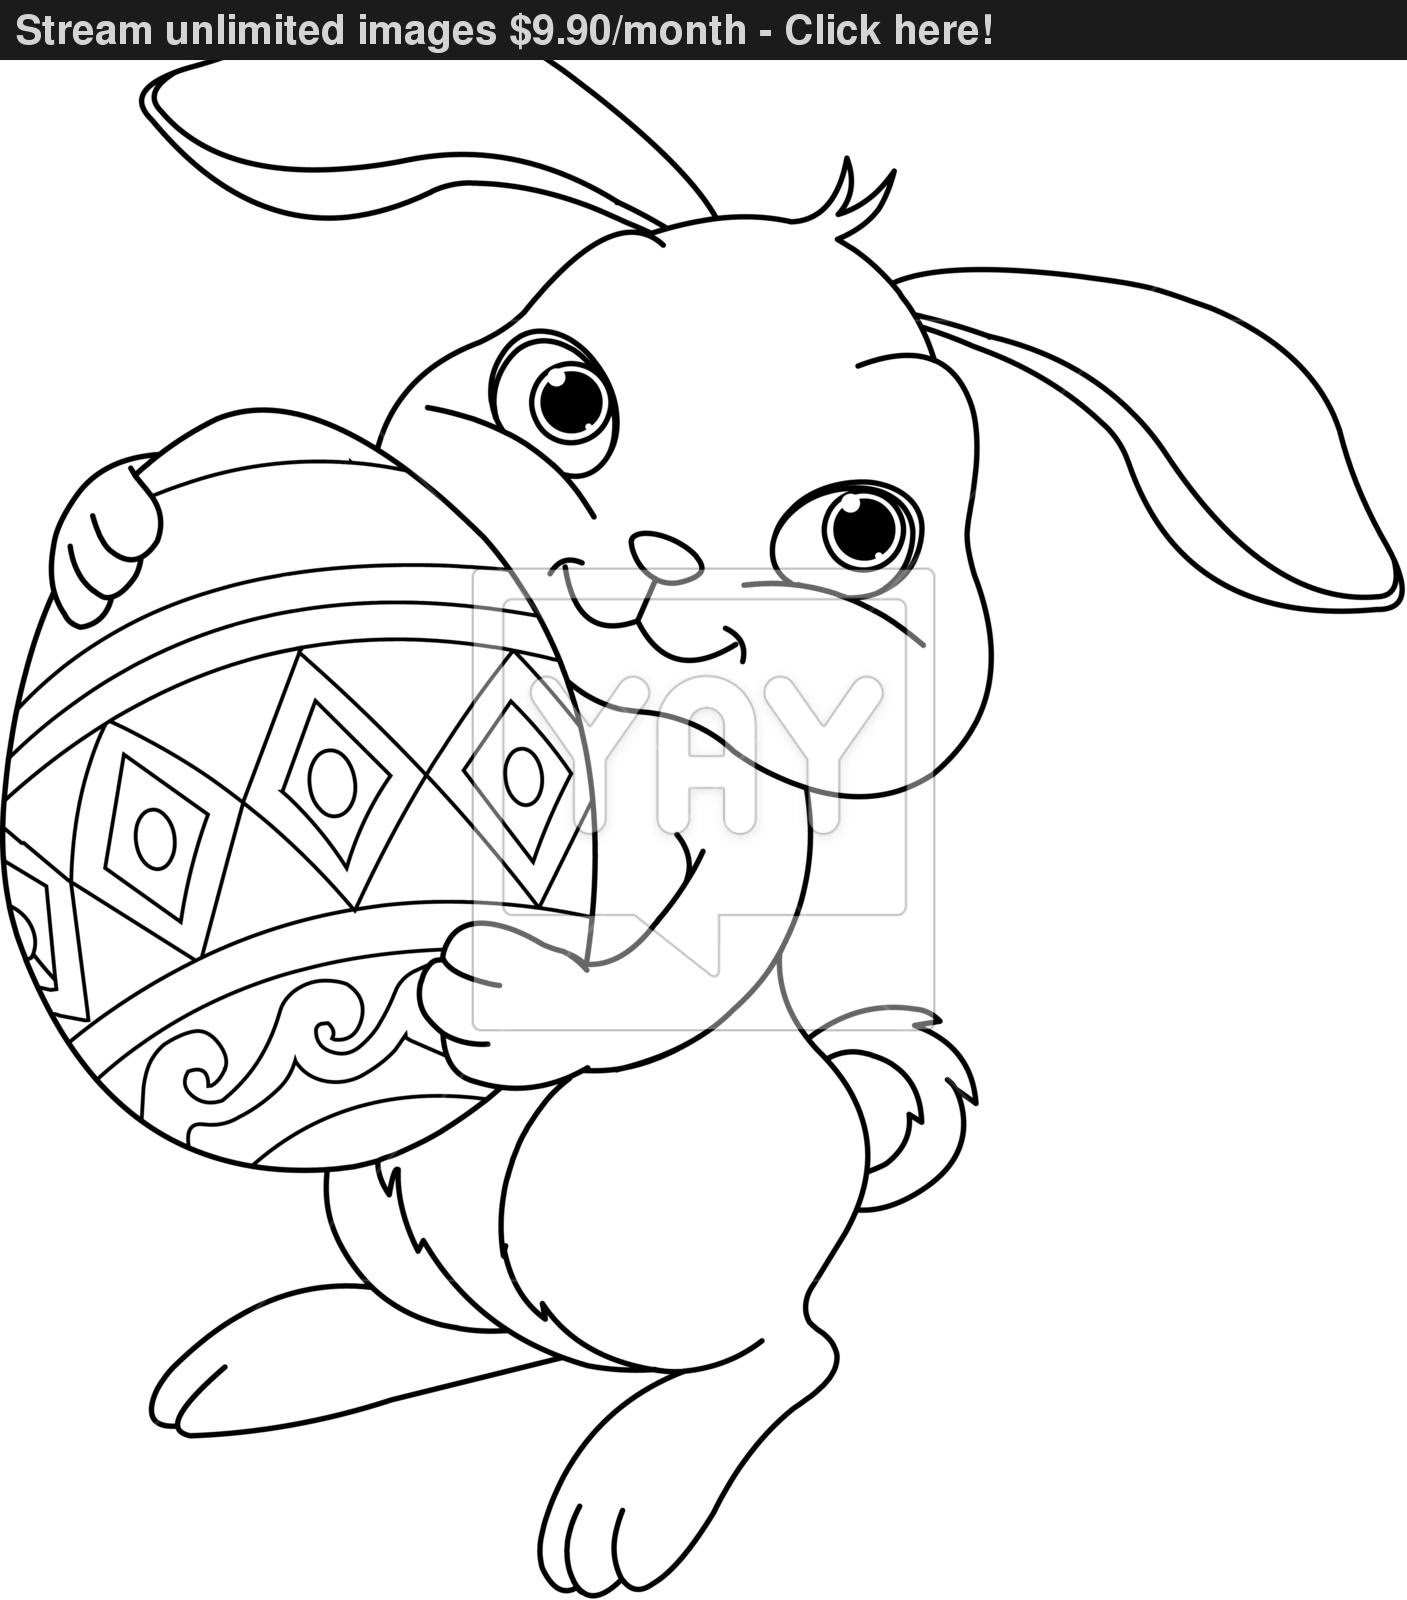 Bunny Drawing For Kids at GetDrawings | Free download